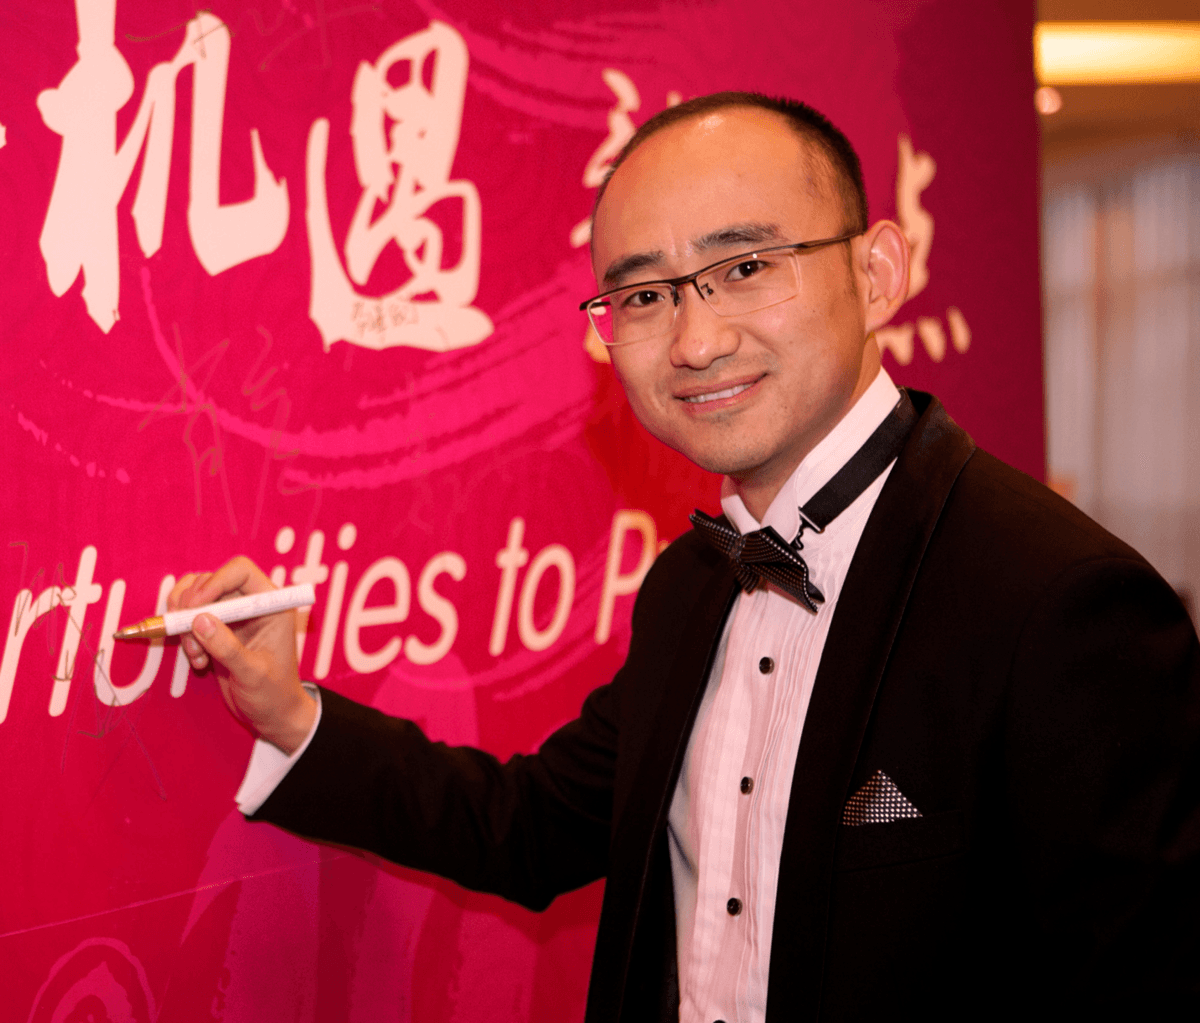 Allen Guo, Senior Operations Manager